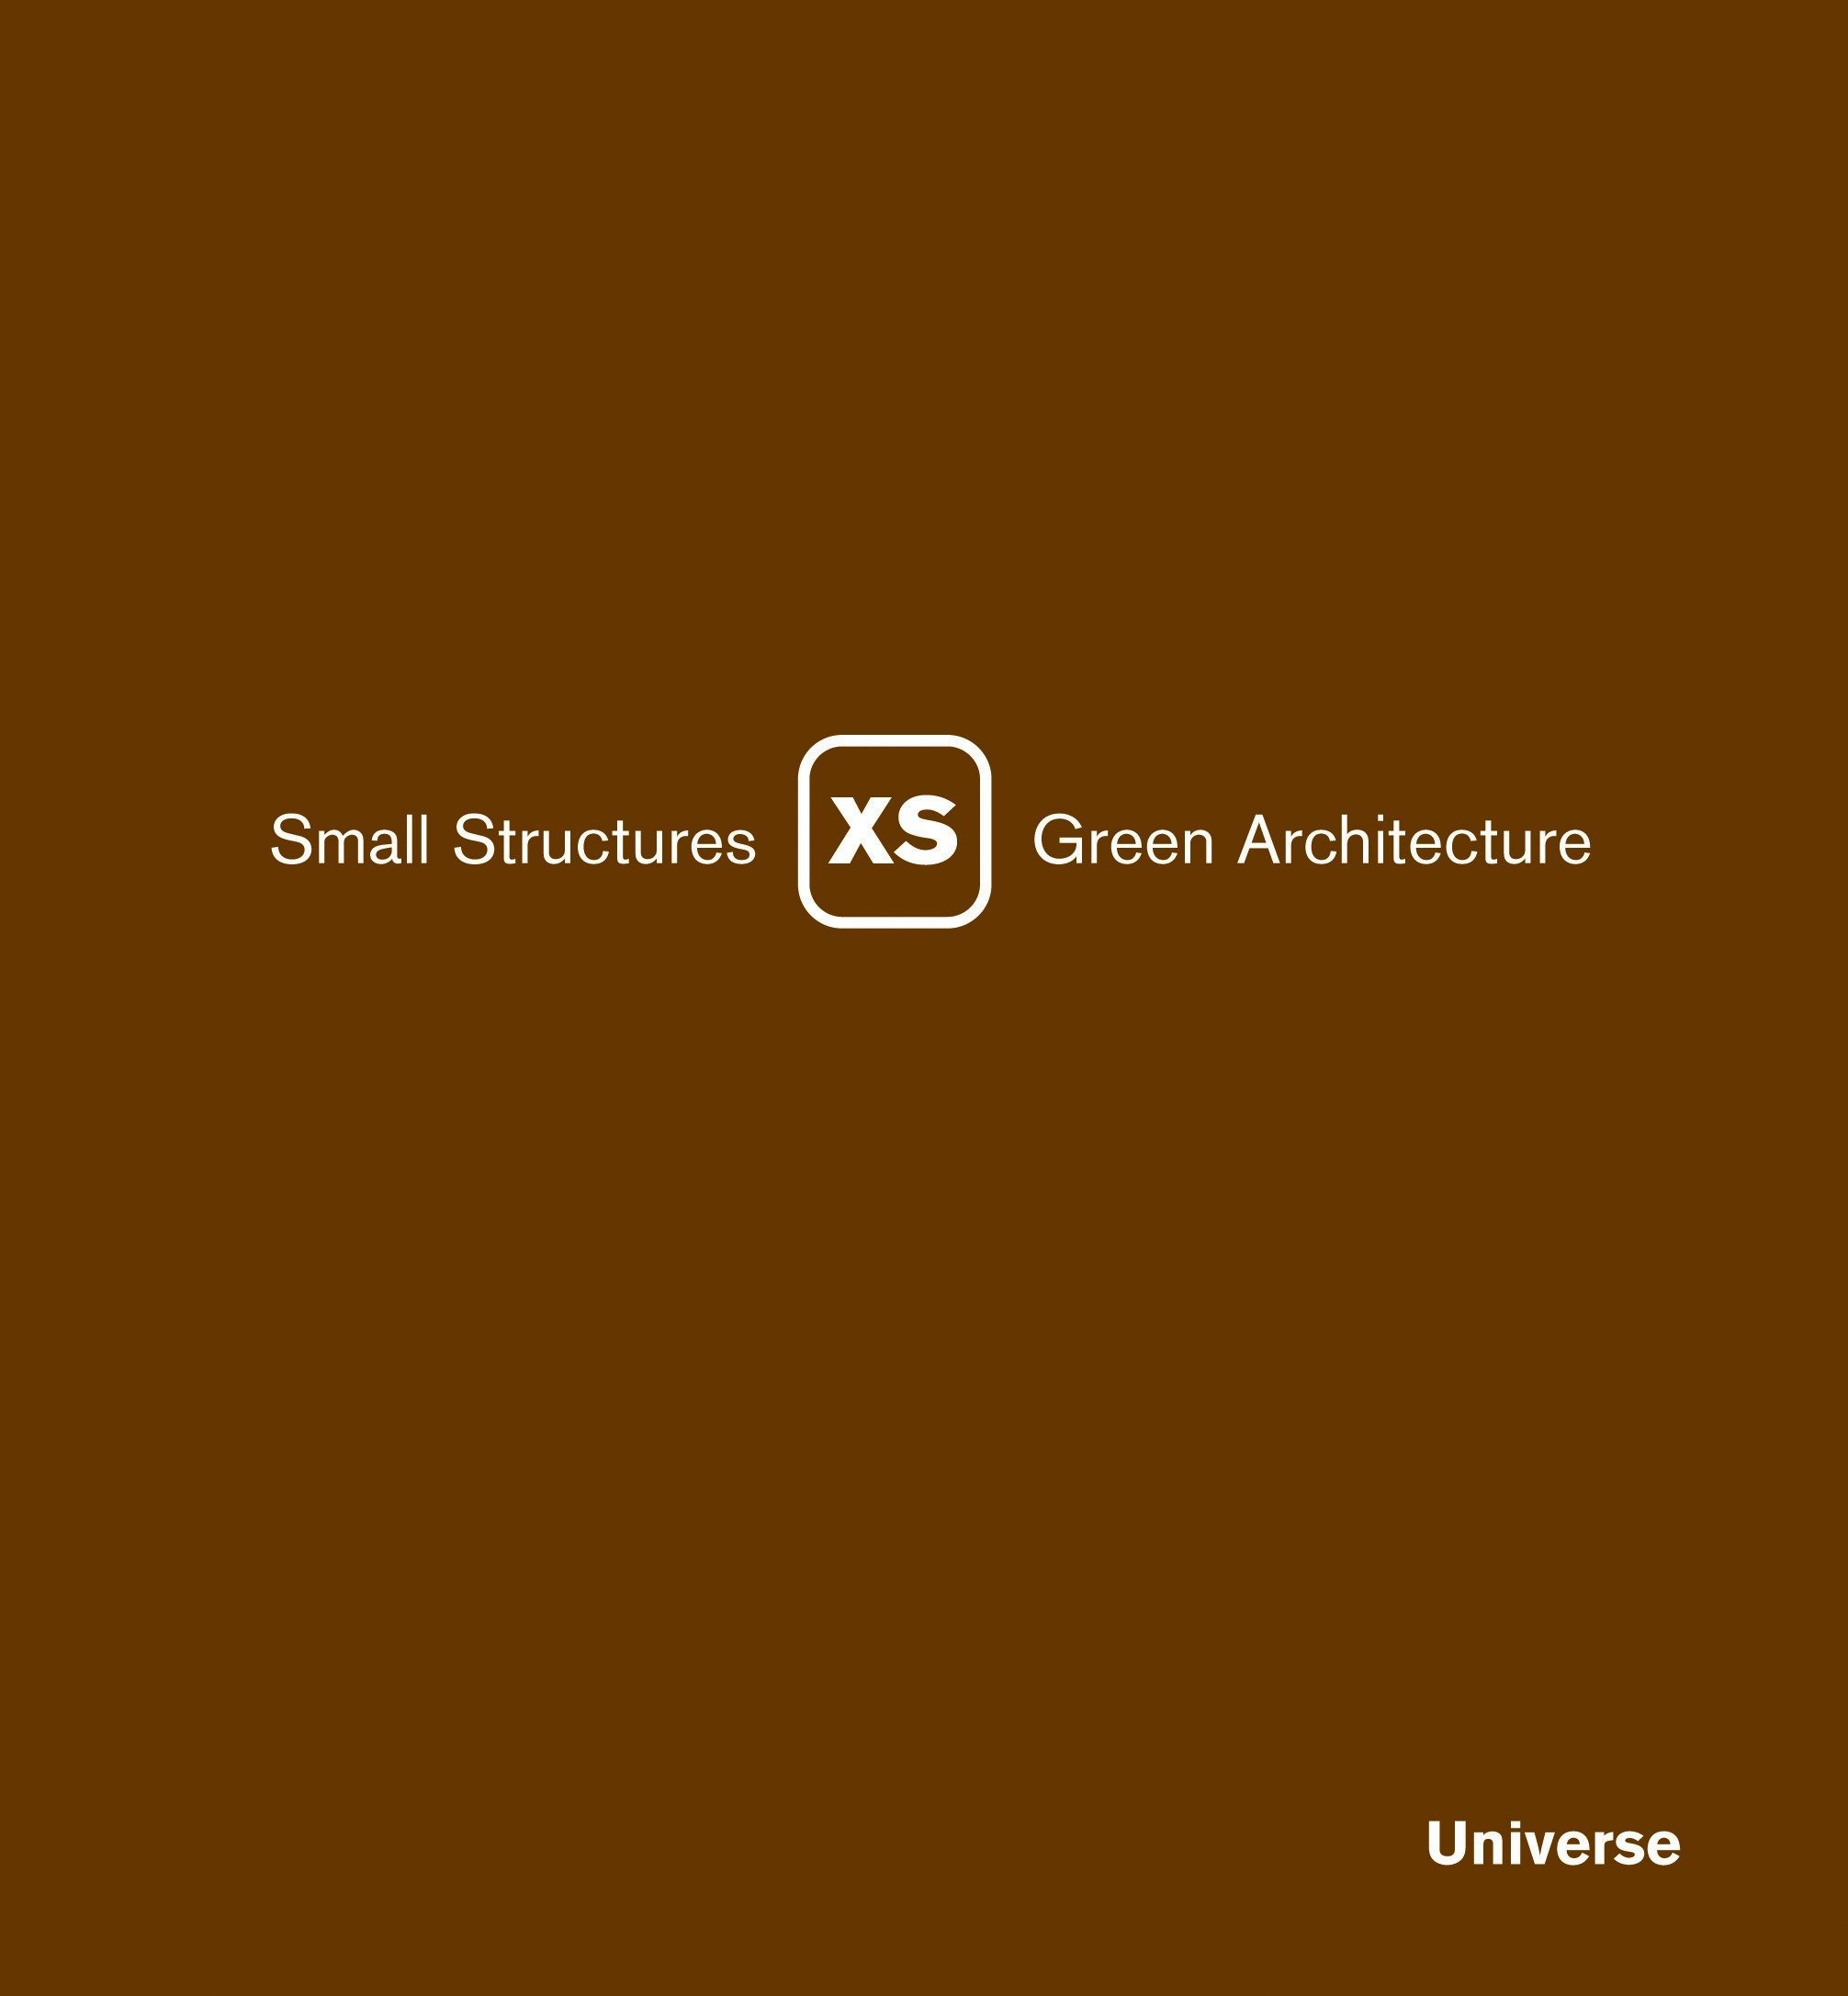 Amazon.com: XS: Small Structures, Green Architecture (9780789315250):  Phyllis Richardson: Books